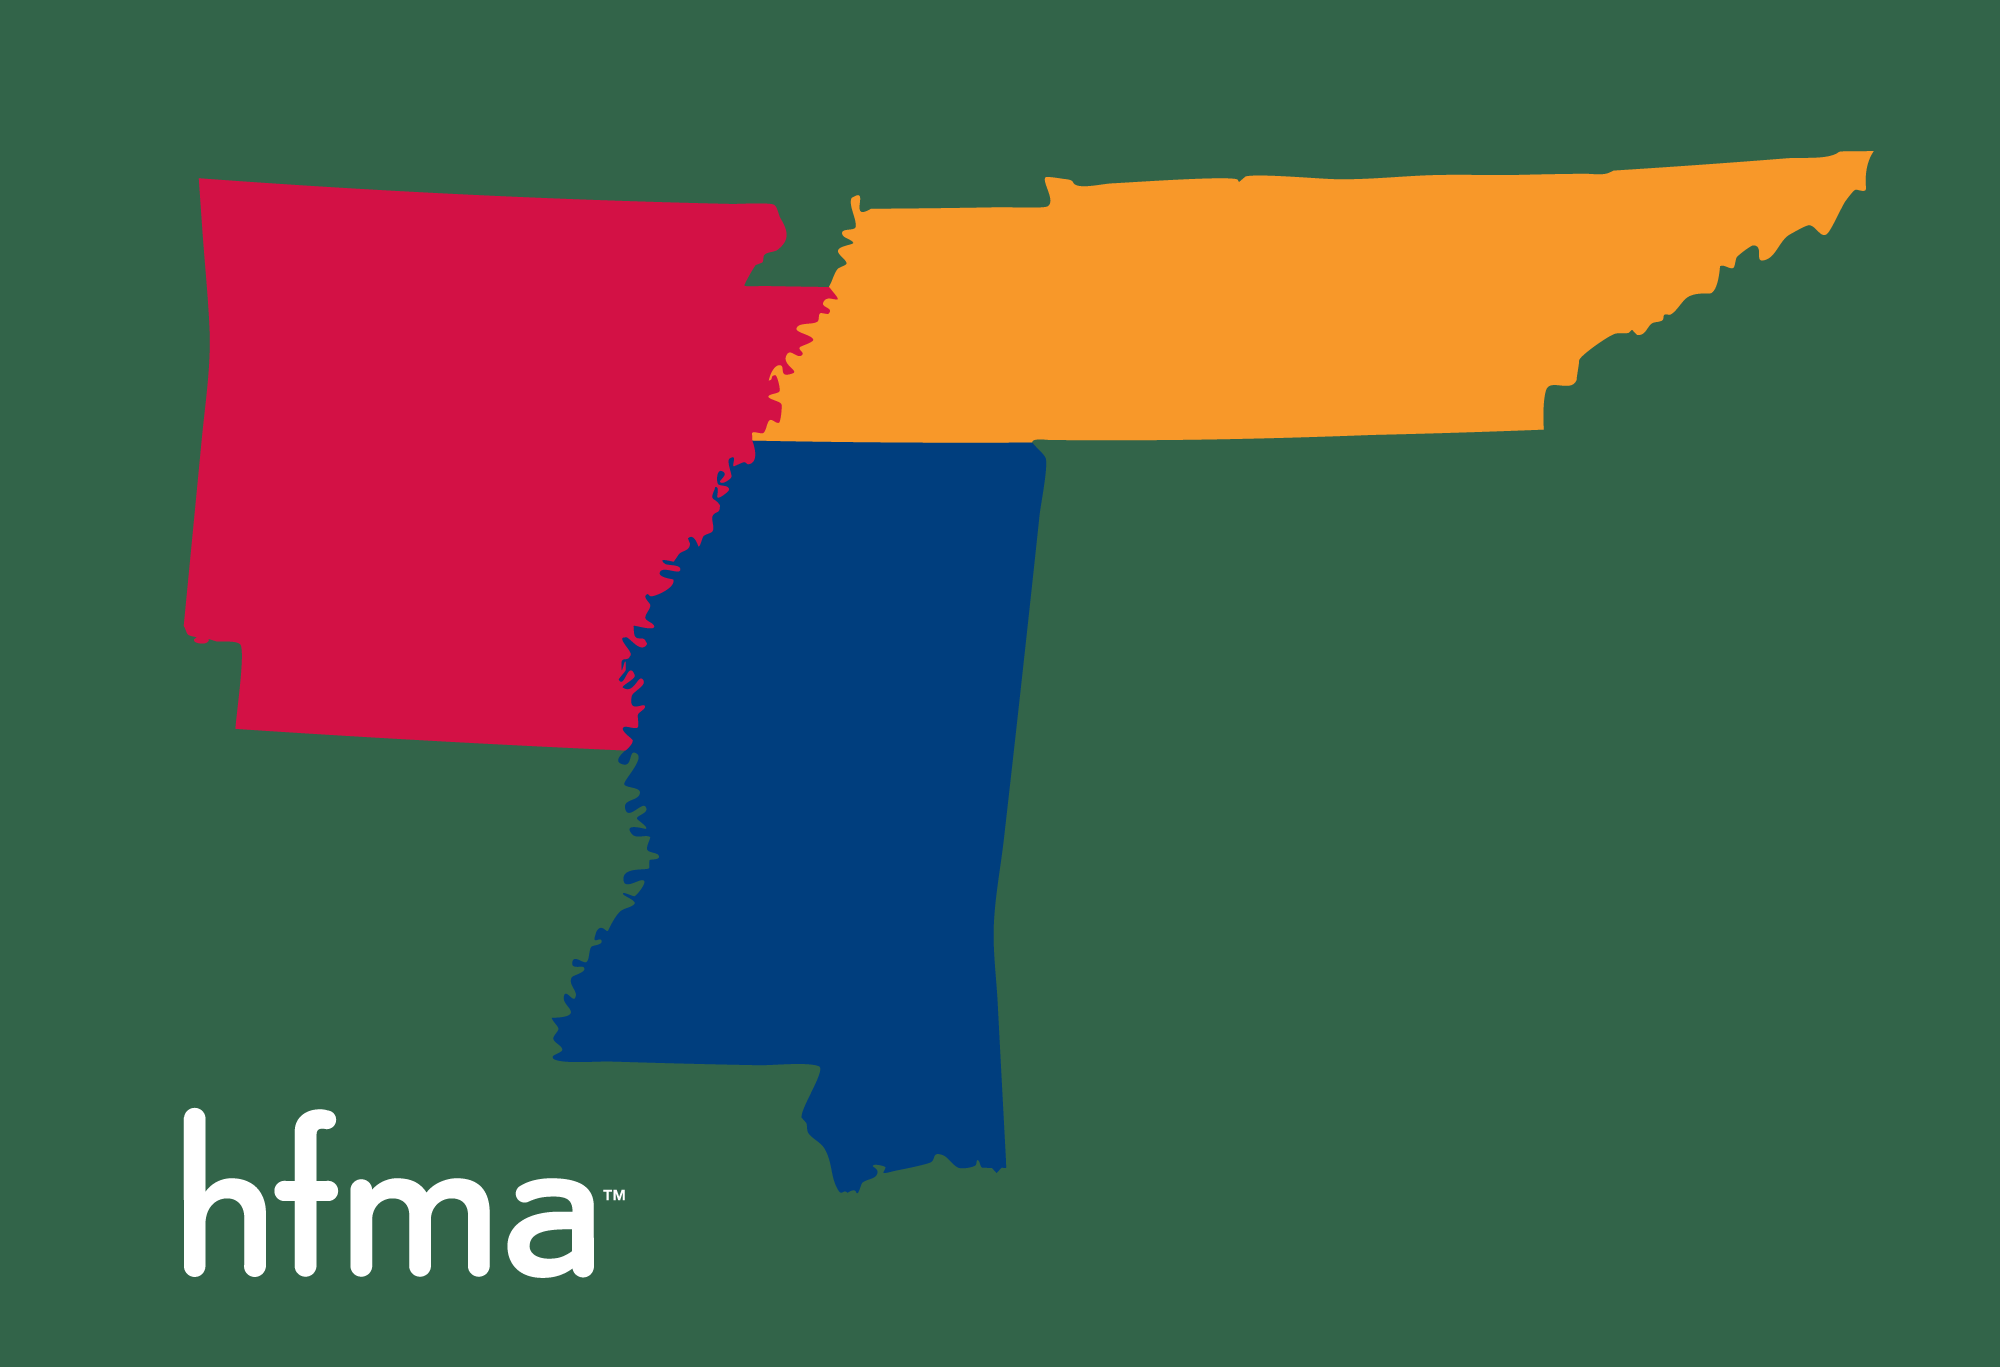 2019 HFMA MidSouth Institute